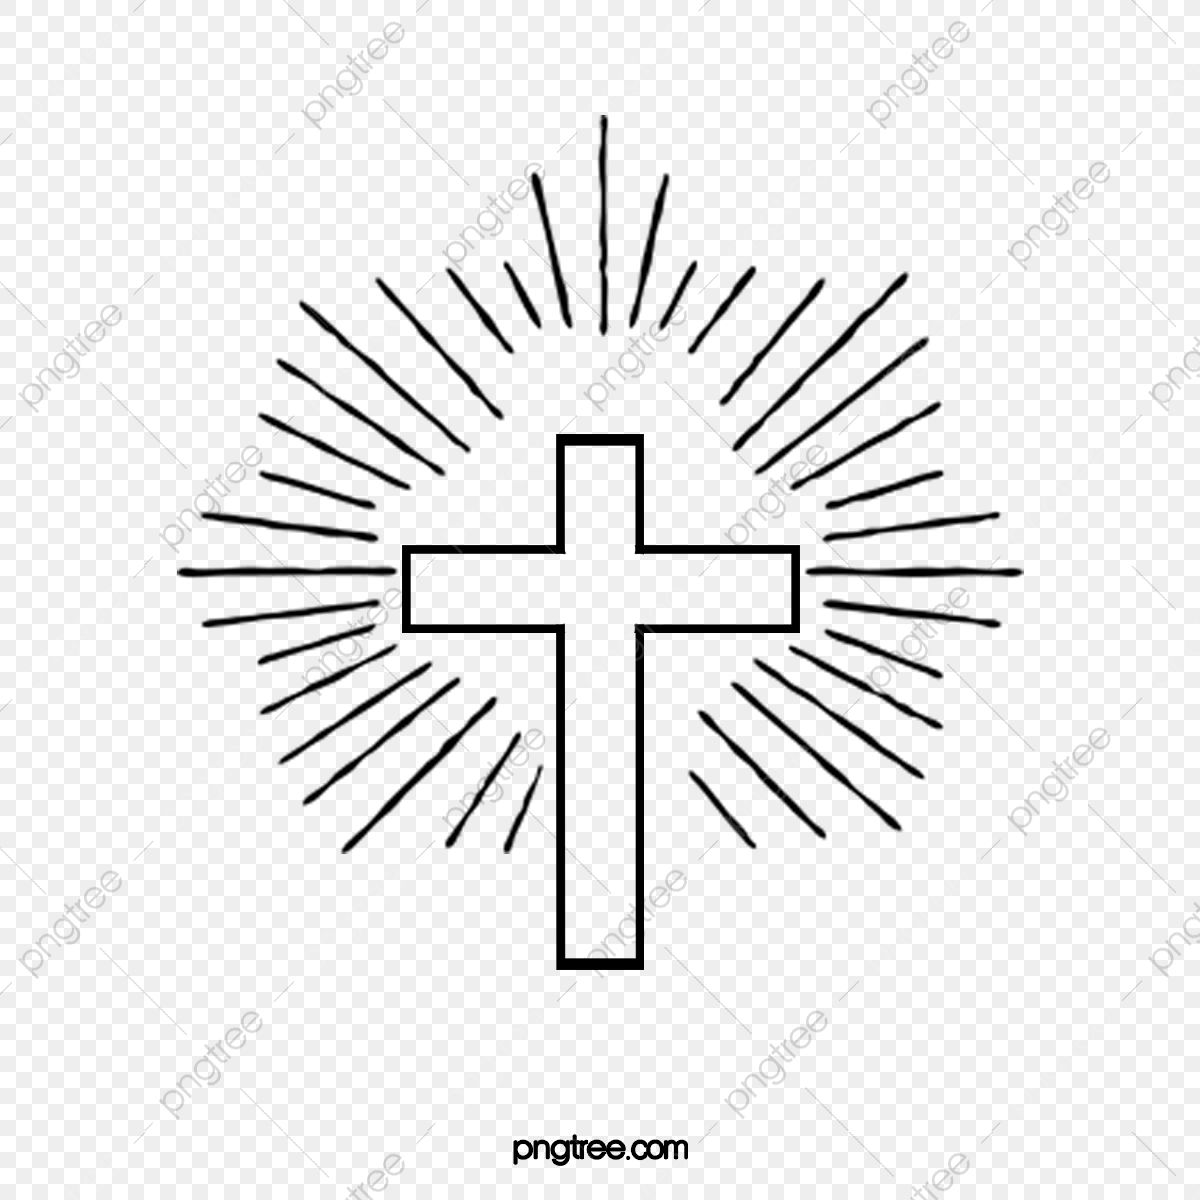 Cross Sketch Cross Clipart Black Jane Pen Png Transparent Clipart Image And Psd File For Free Download Cross Clipart Clip Art Clipart Images